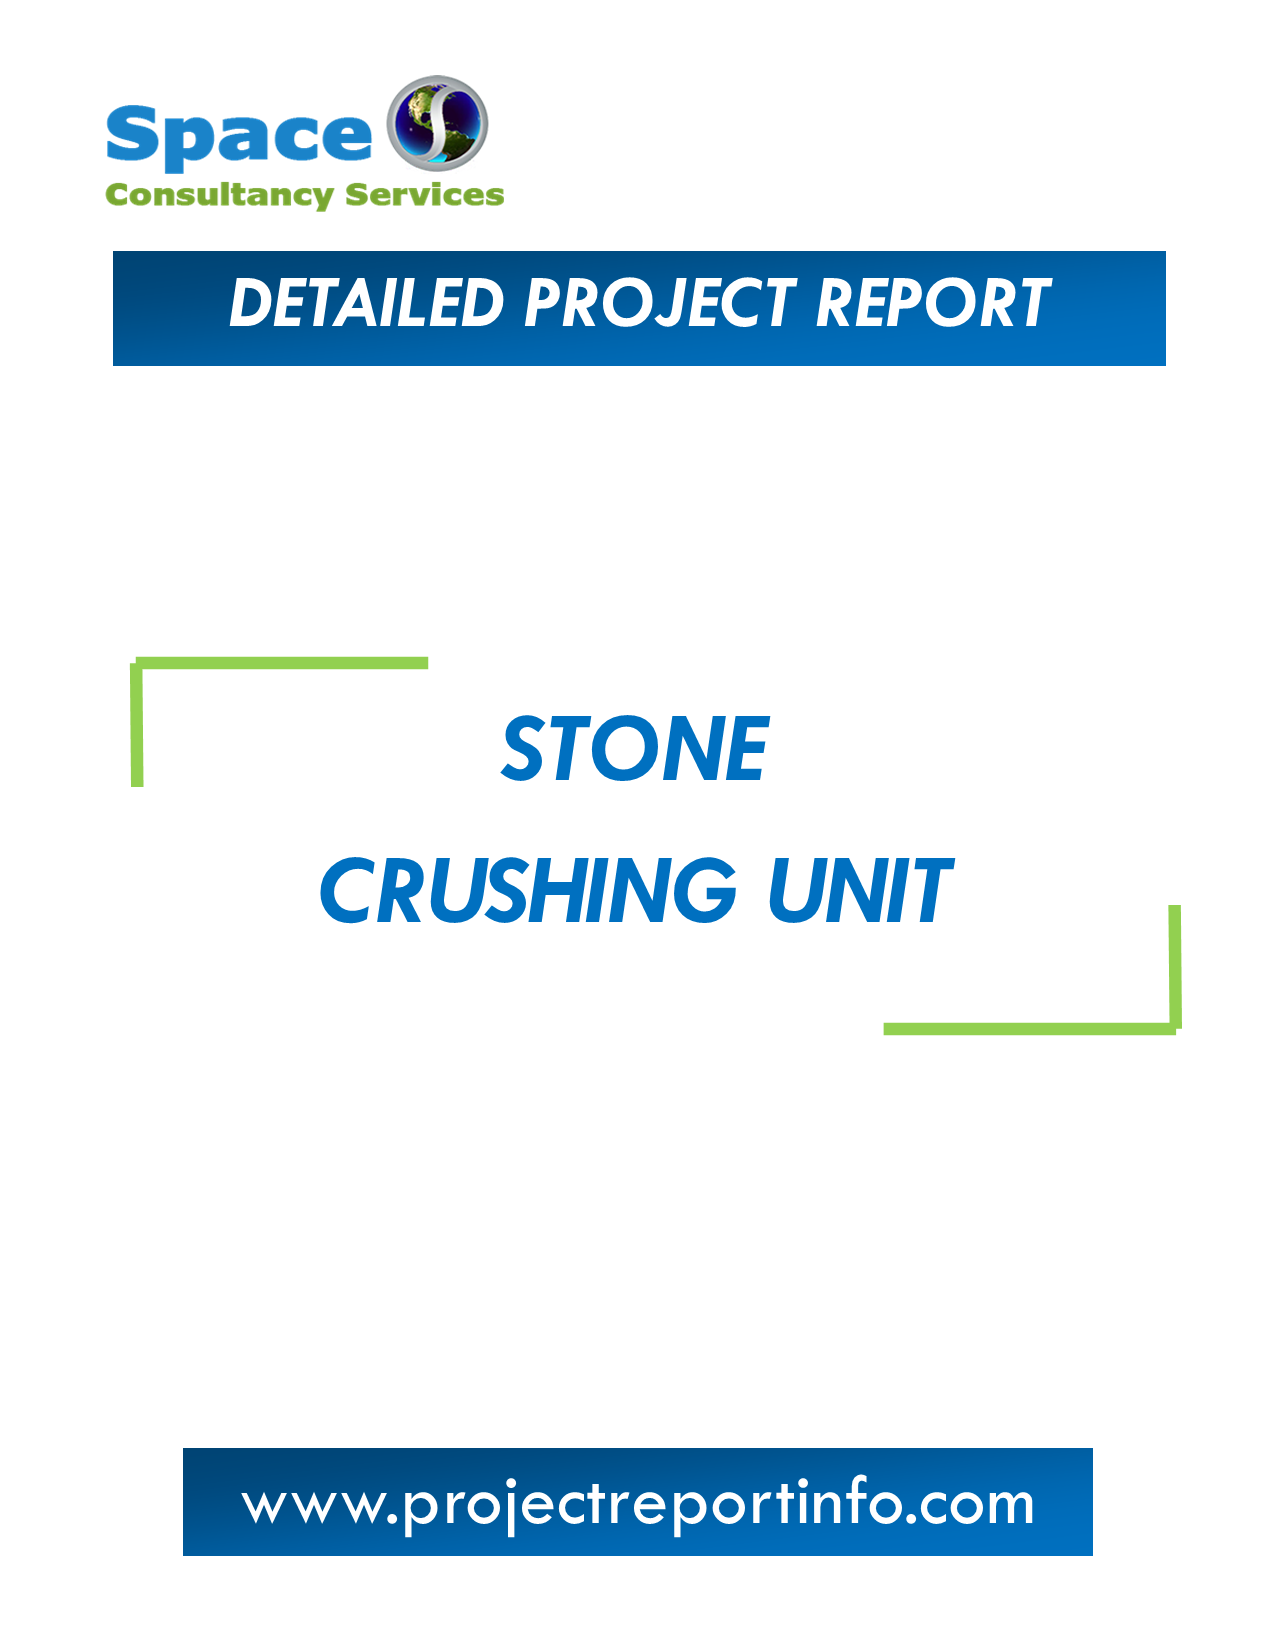 Project Report on Stone Crushing Unit